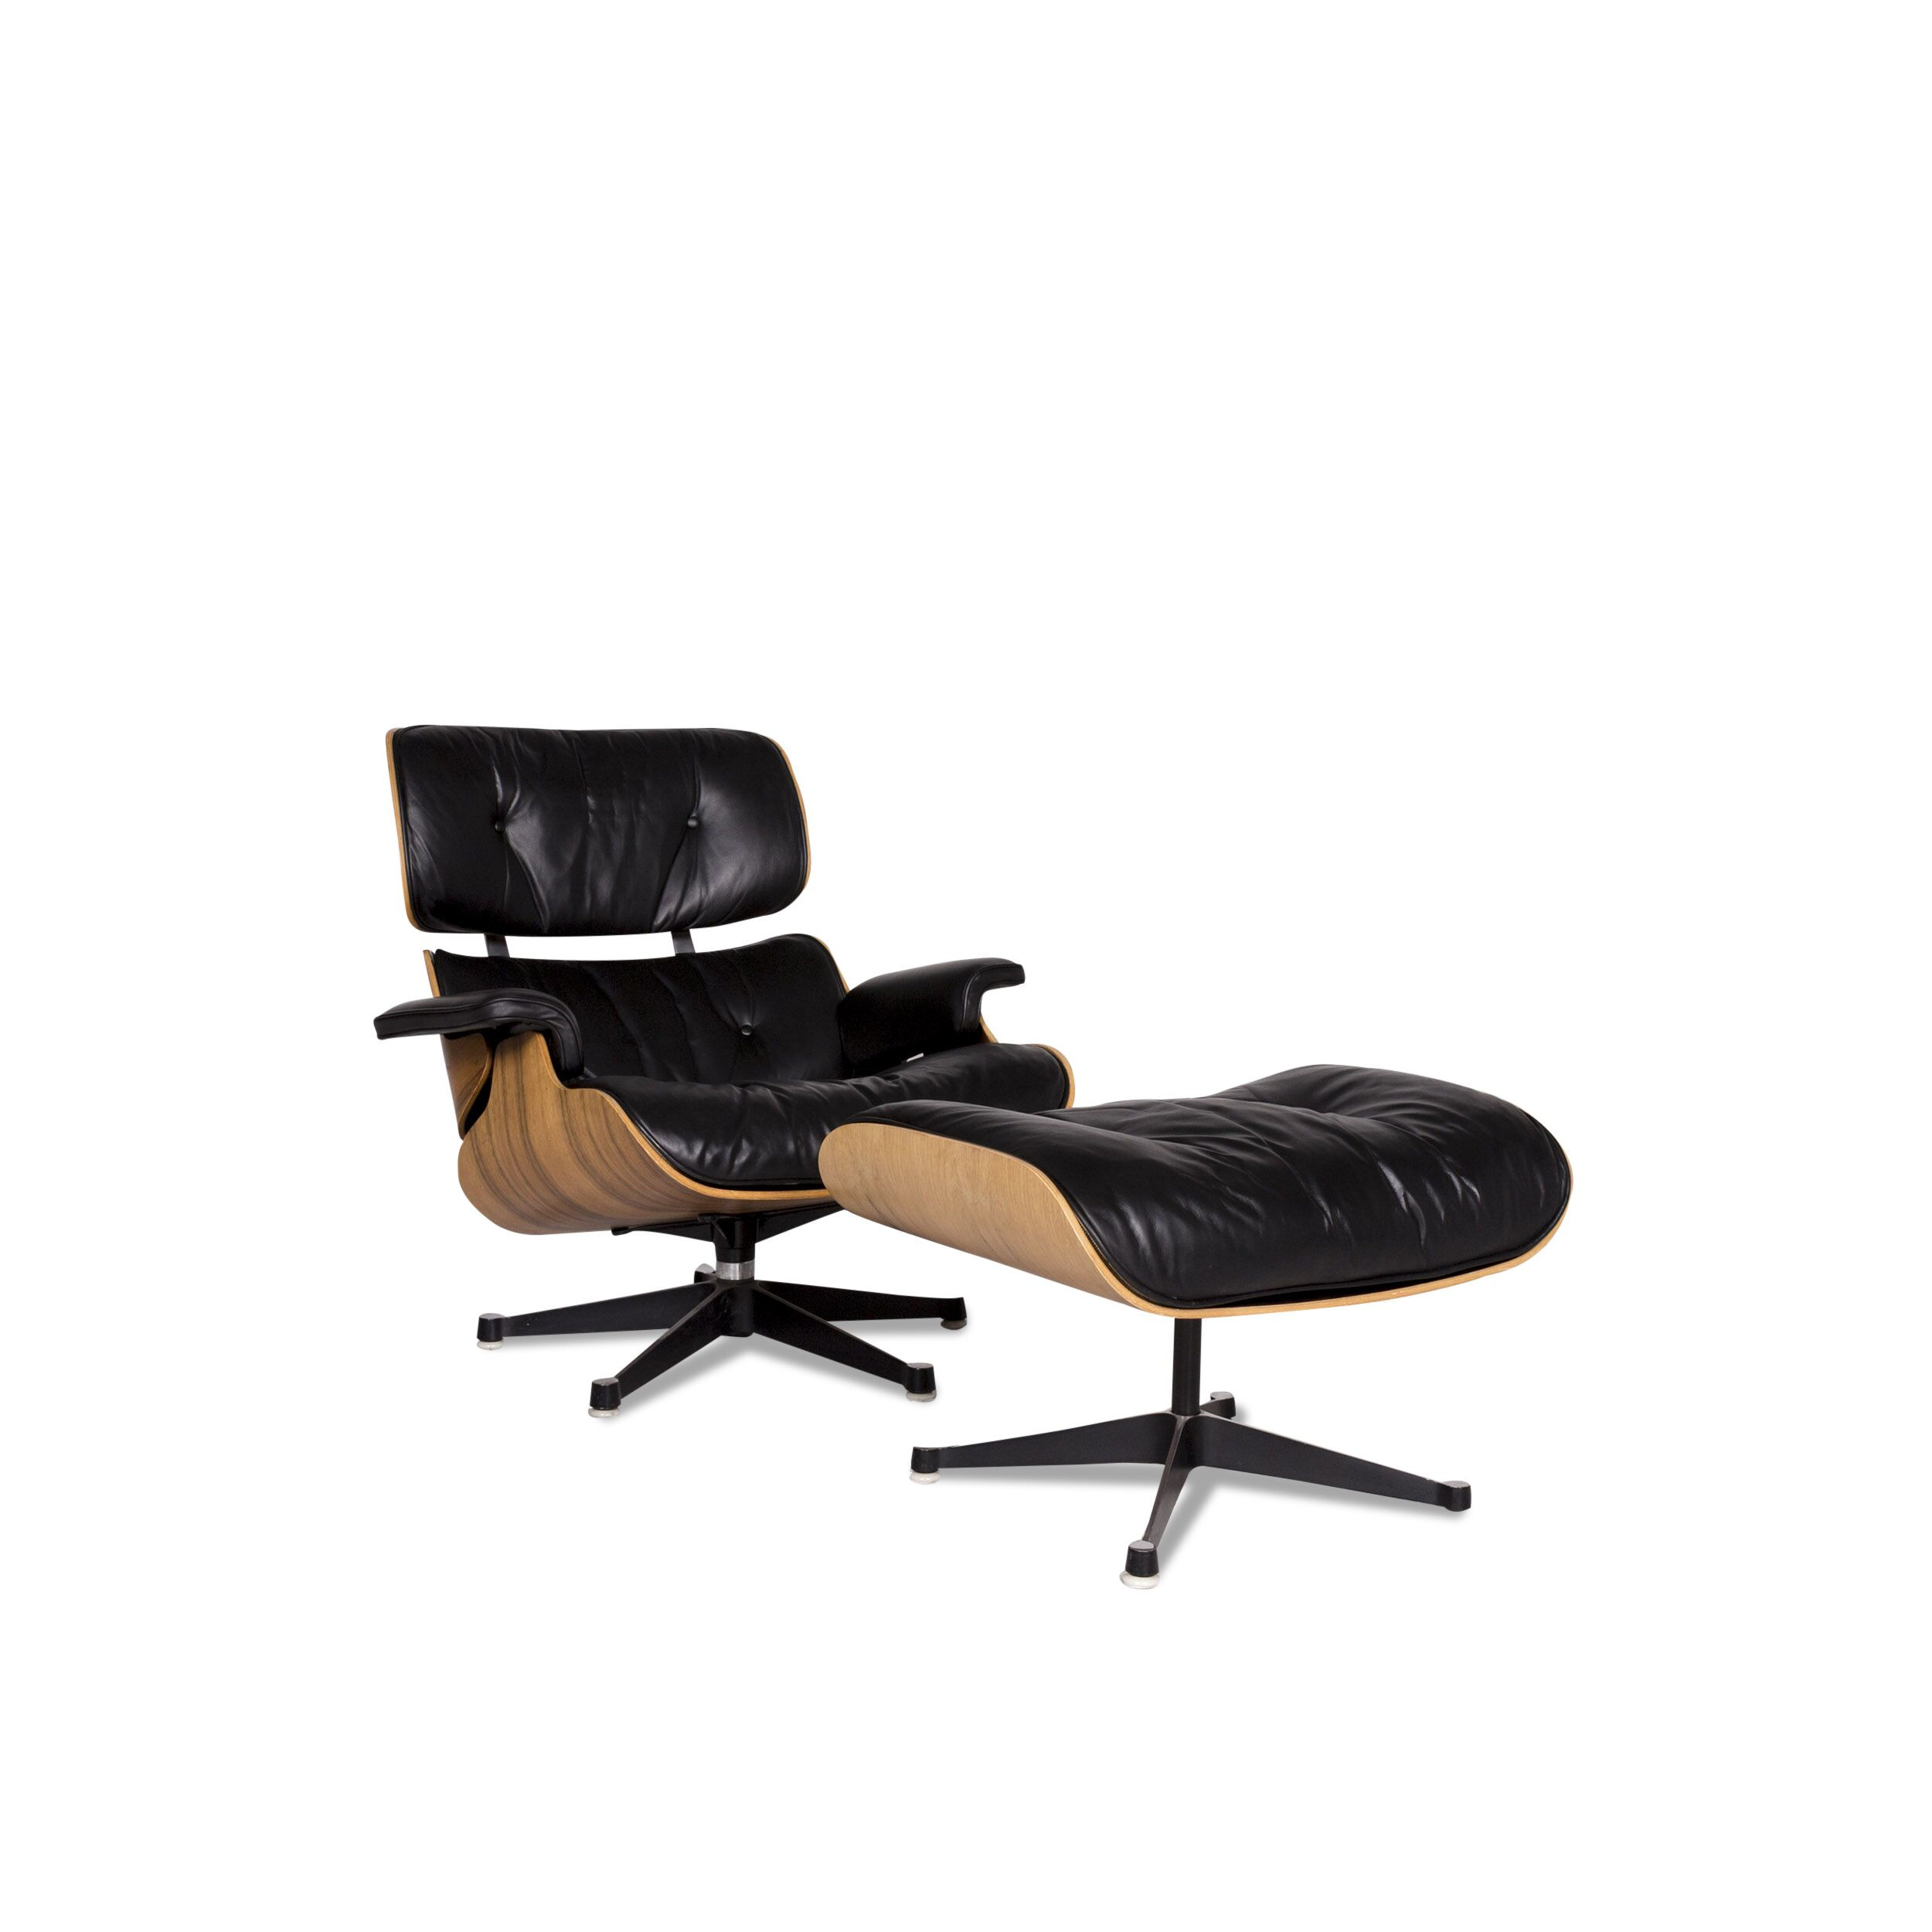 Eames Lounge Chair Zubehör Herman Miller Eames Lounge Chair Leder Sessel Inkl Hocker Schwarz